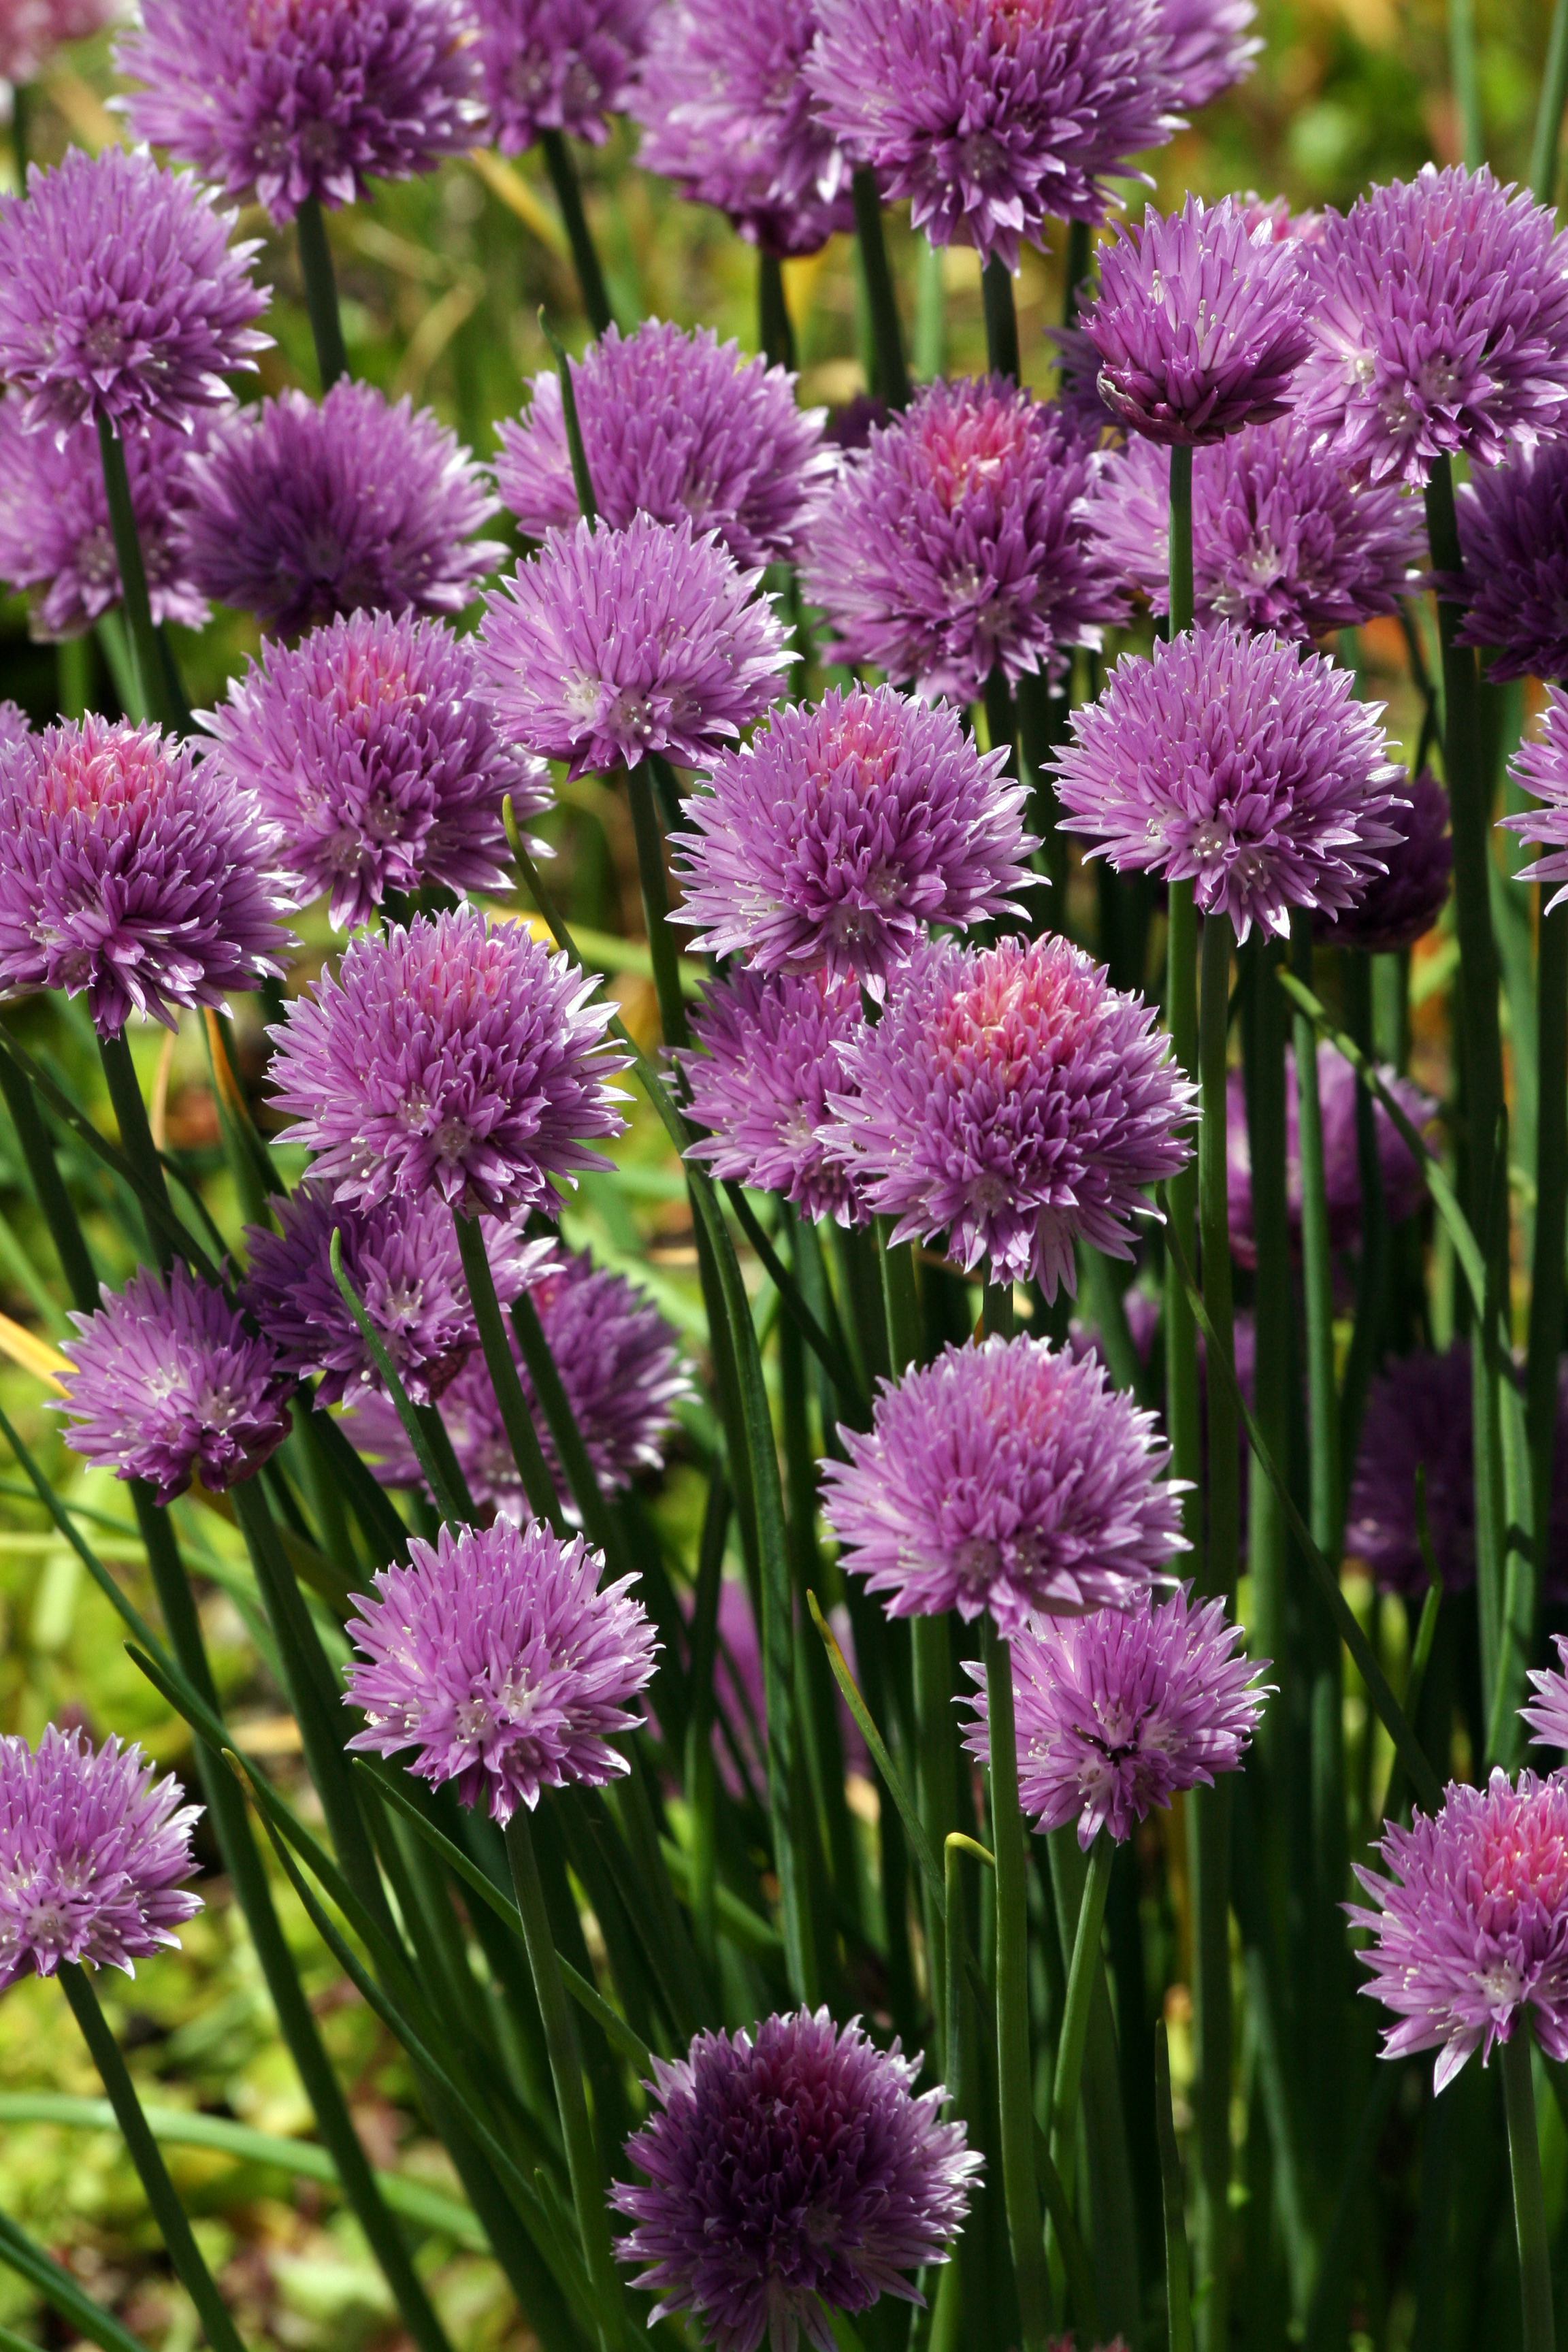 Chives are one of the easiest herbs to grow and their flowers are worth it. Add them to your perennial garden and divide every 3-5 years to keep plants thriving. Remove seed heads to keep from reseeding (or not!).